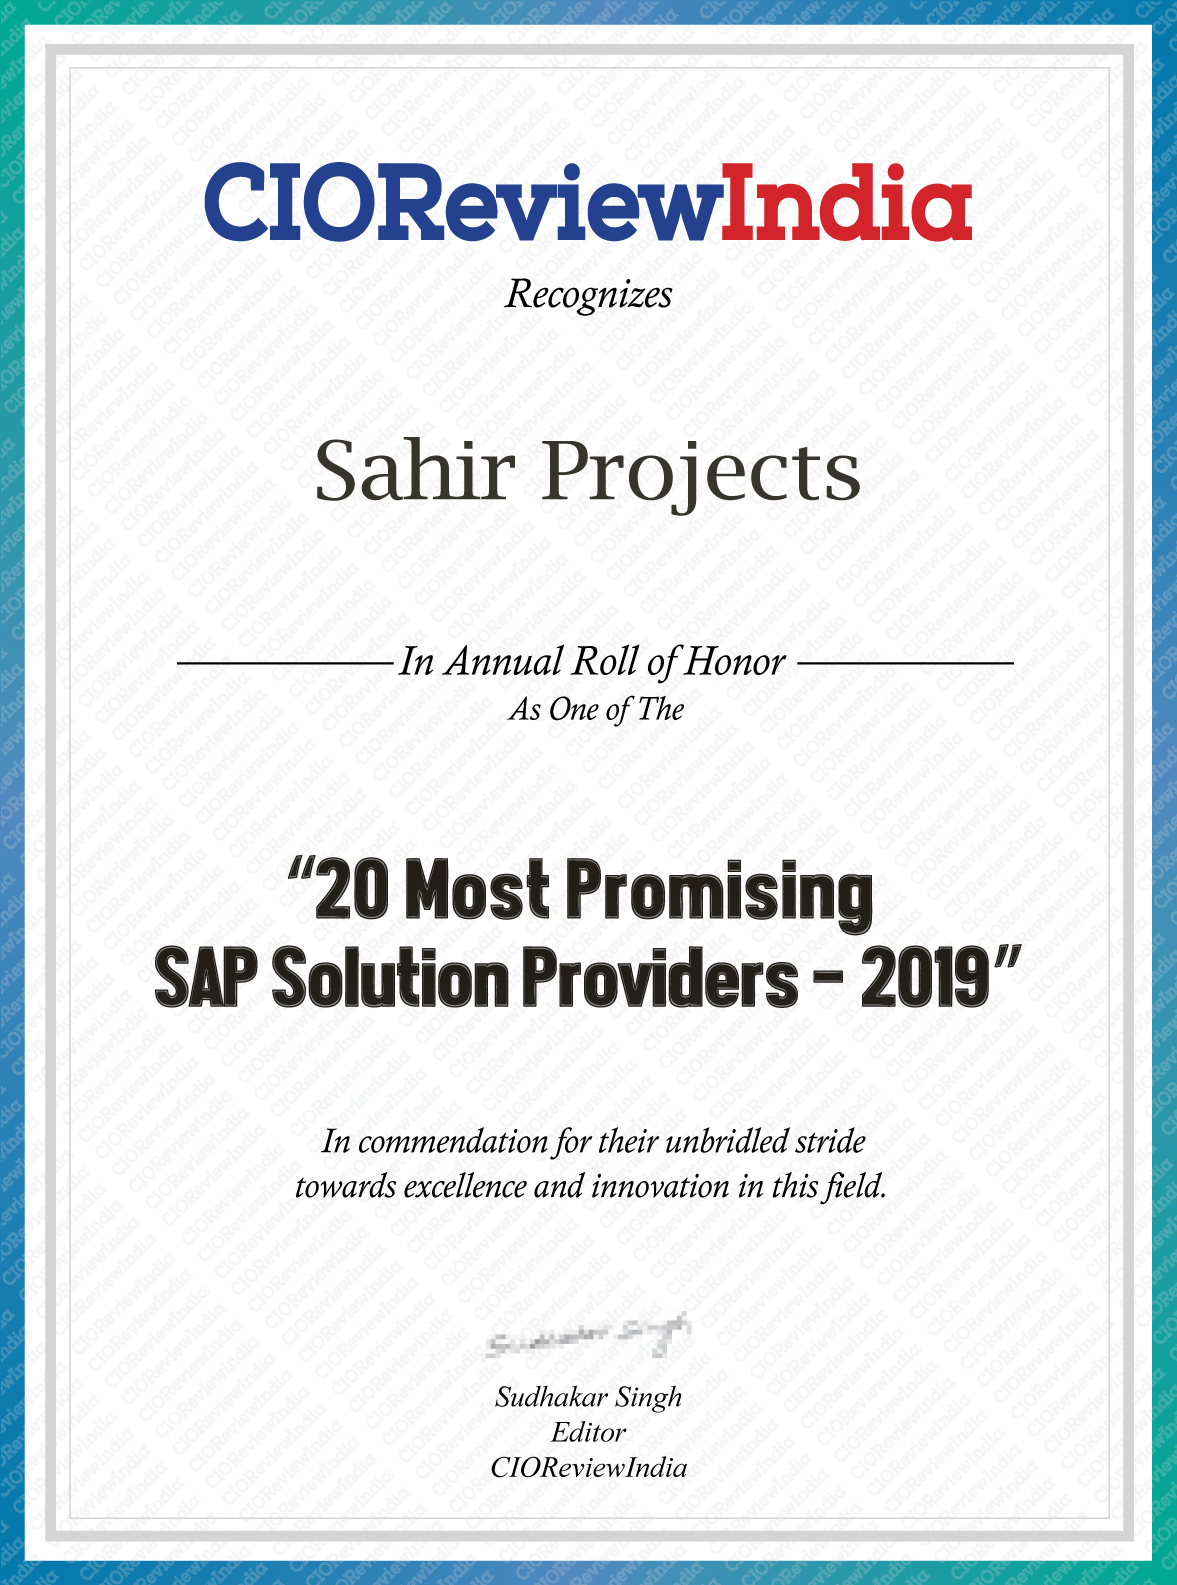 Most Promising SAP Solution Provider